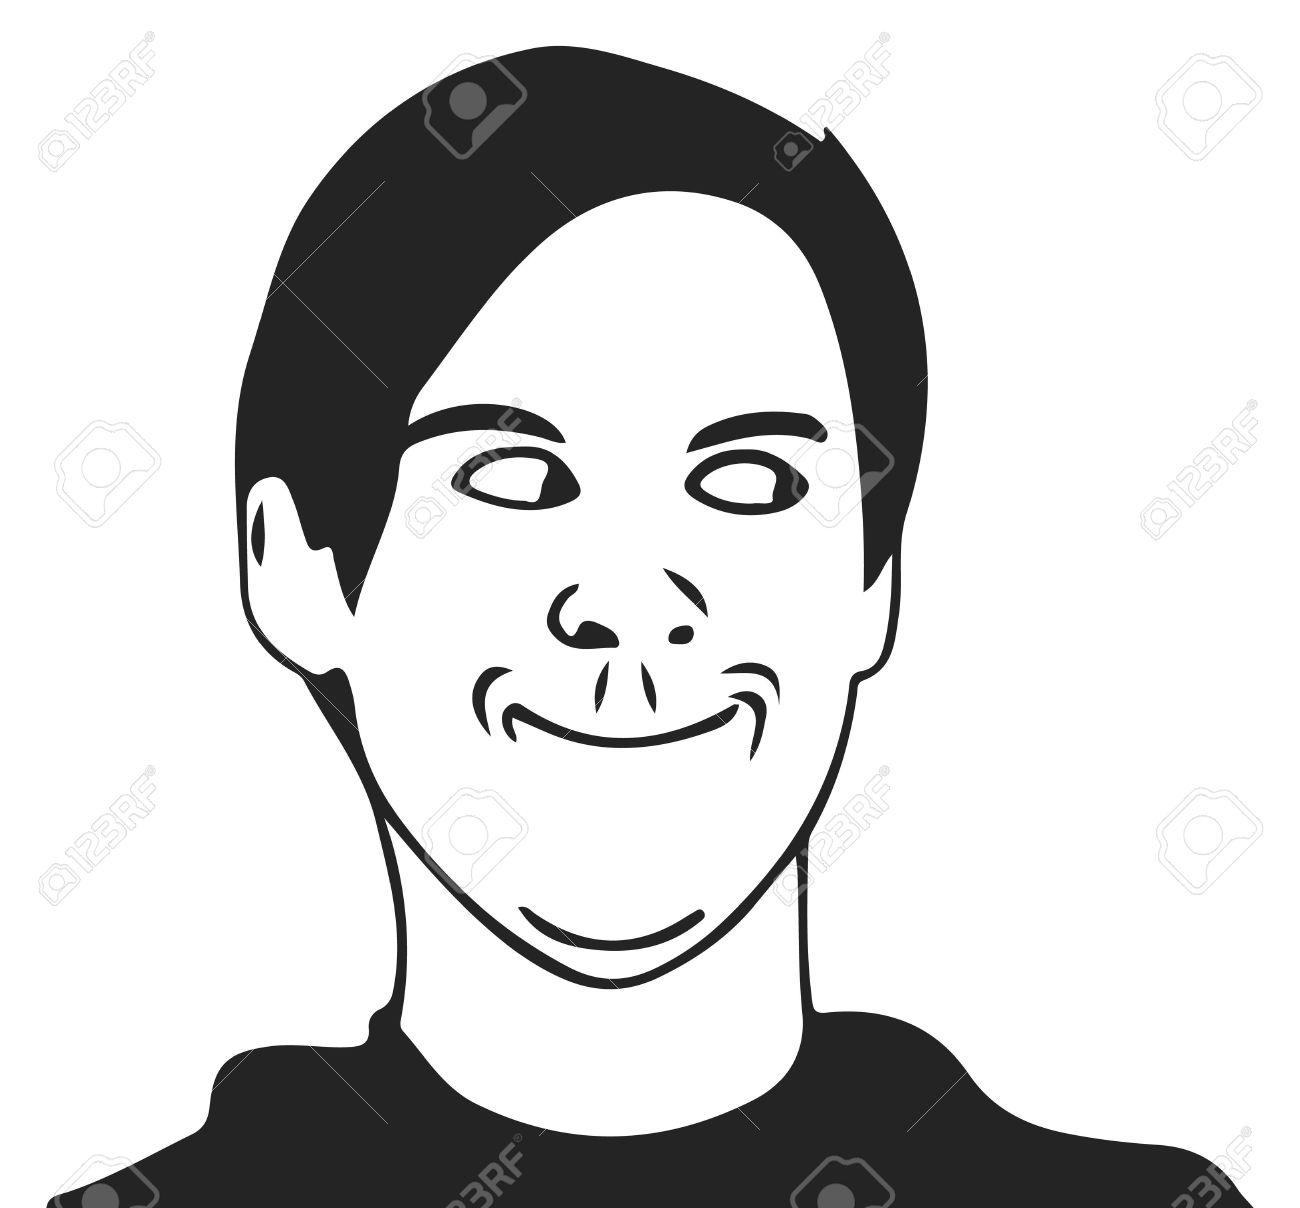 troll guy meme face for any design royalty free cliparts vectors